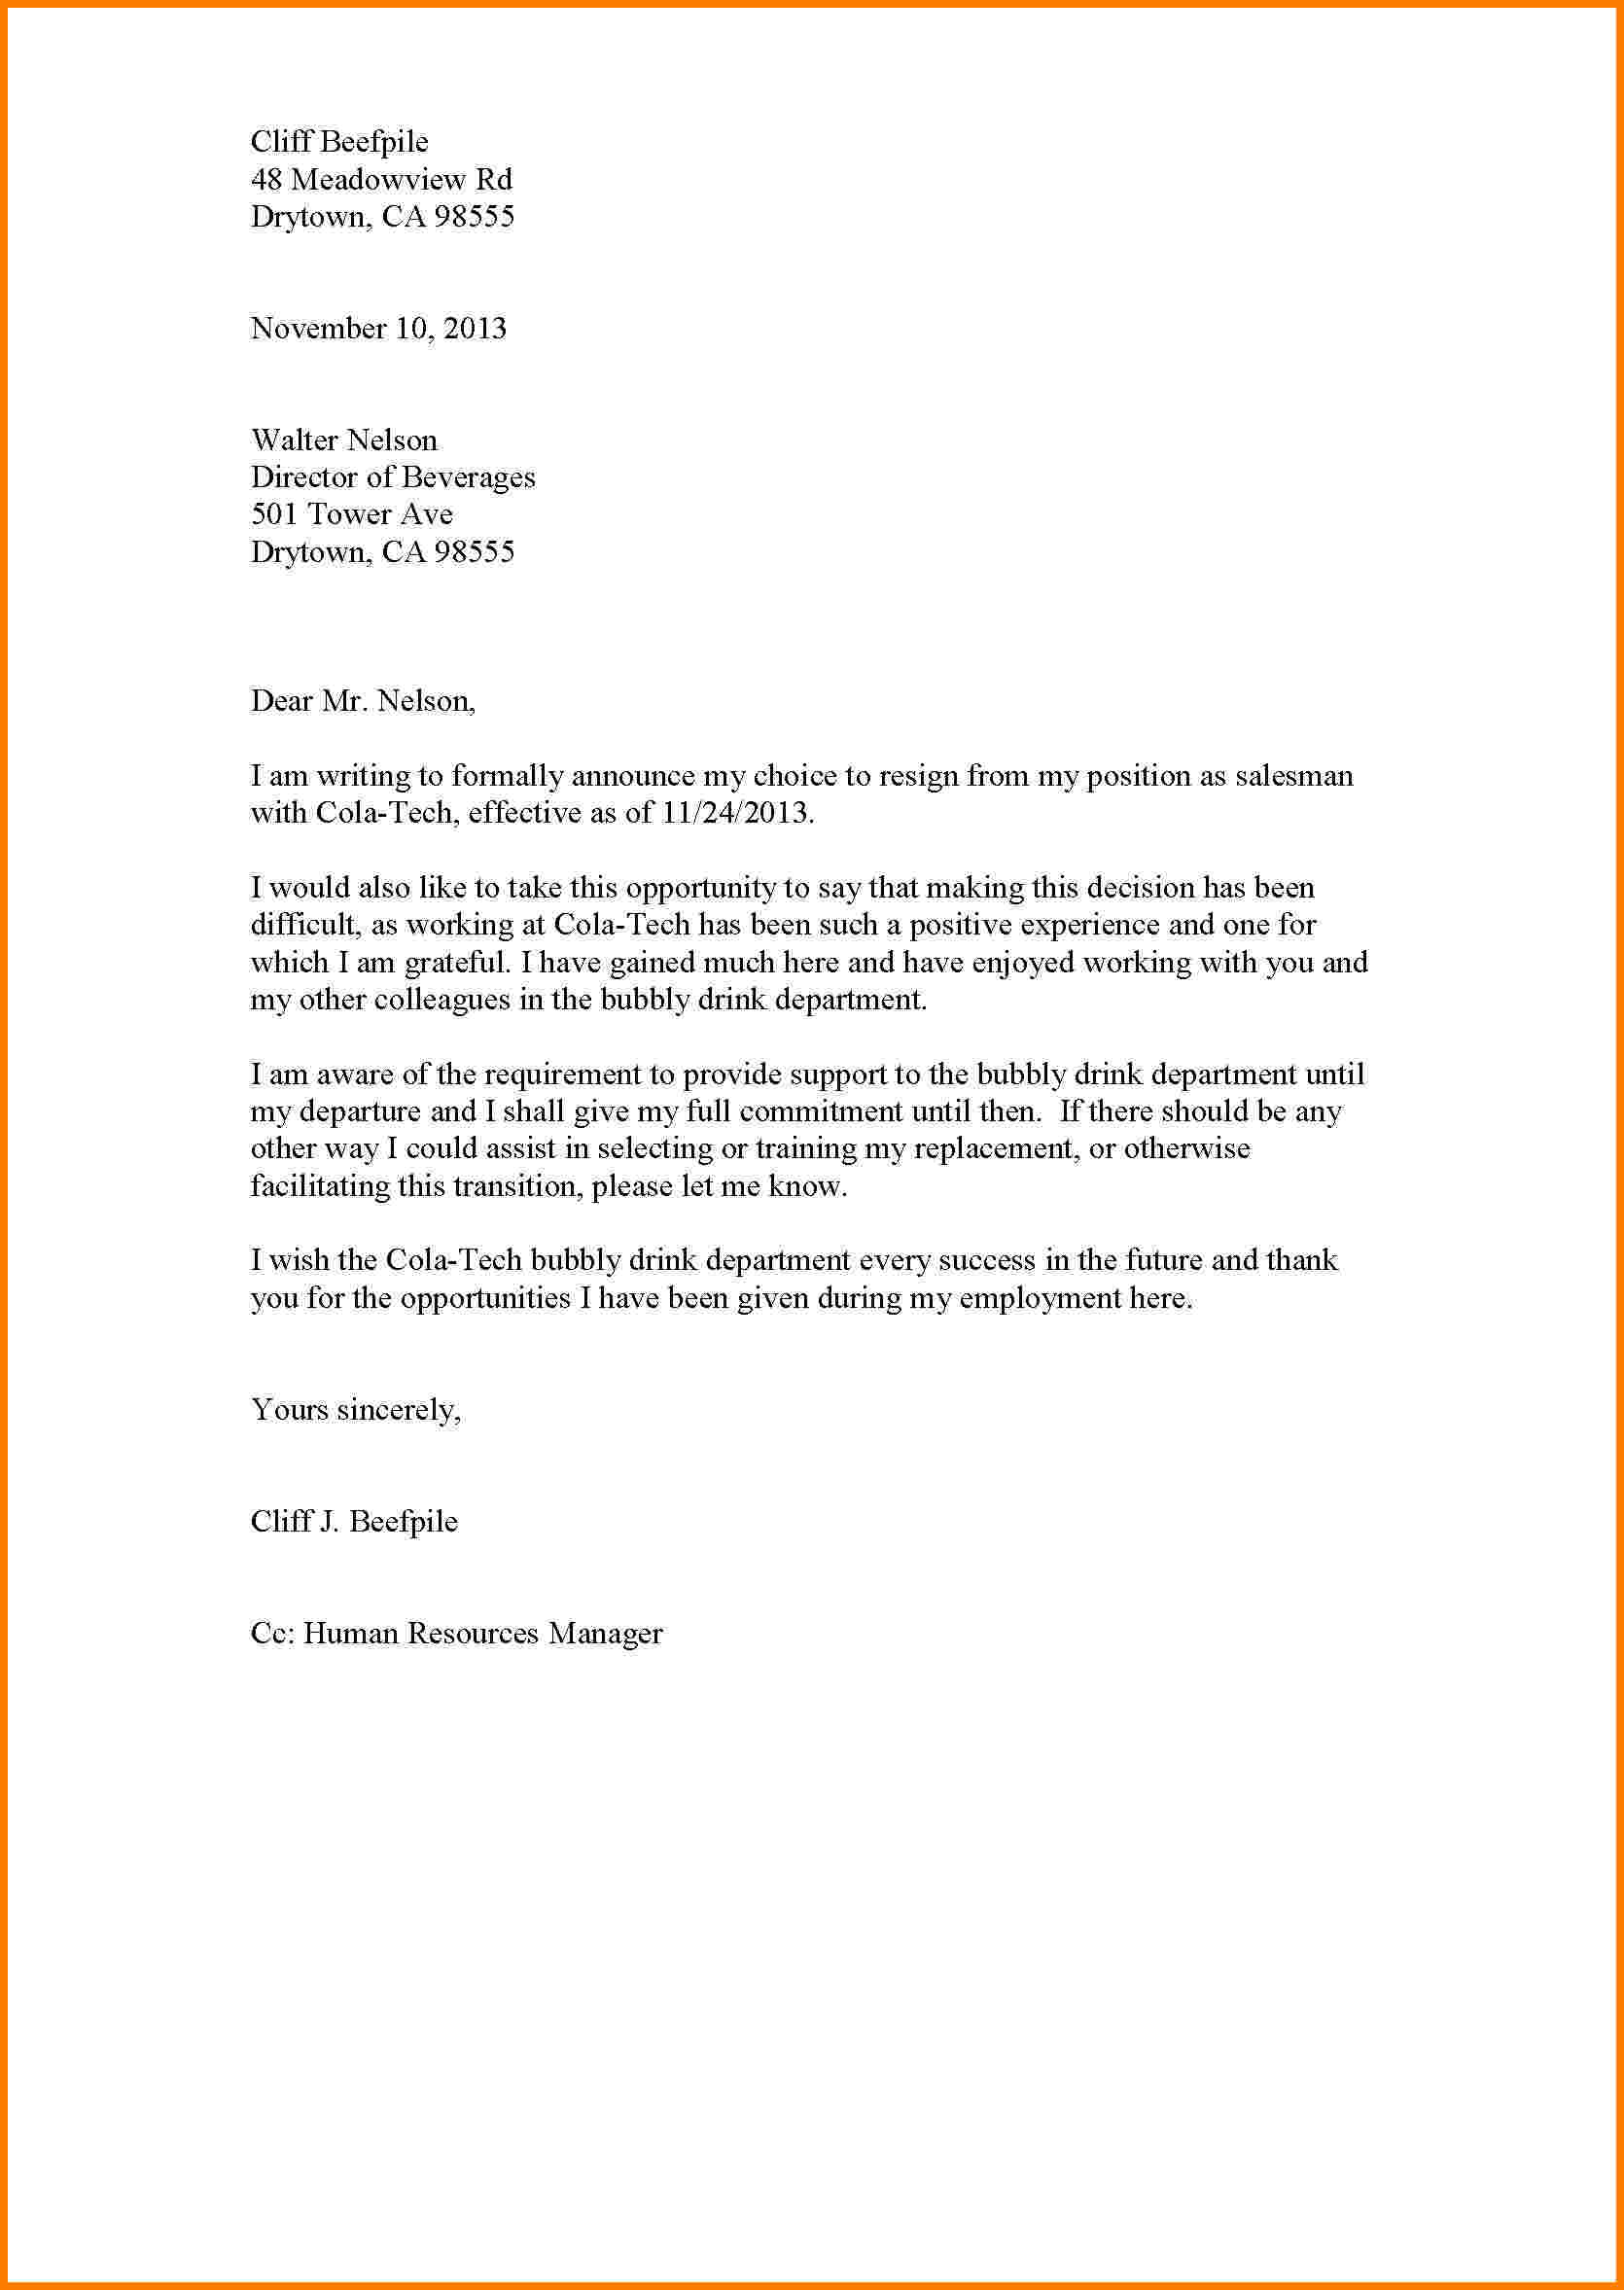 Standard Resignation Letter Template Word - Resignation Letter Template formal Sales Slip Teacher Free Image